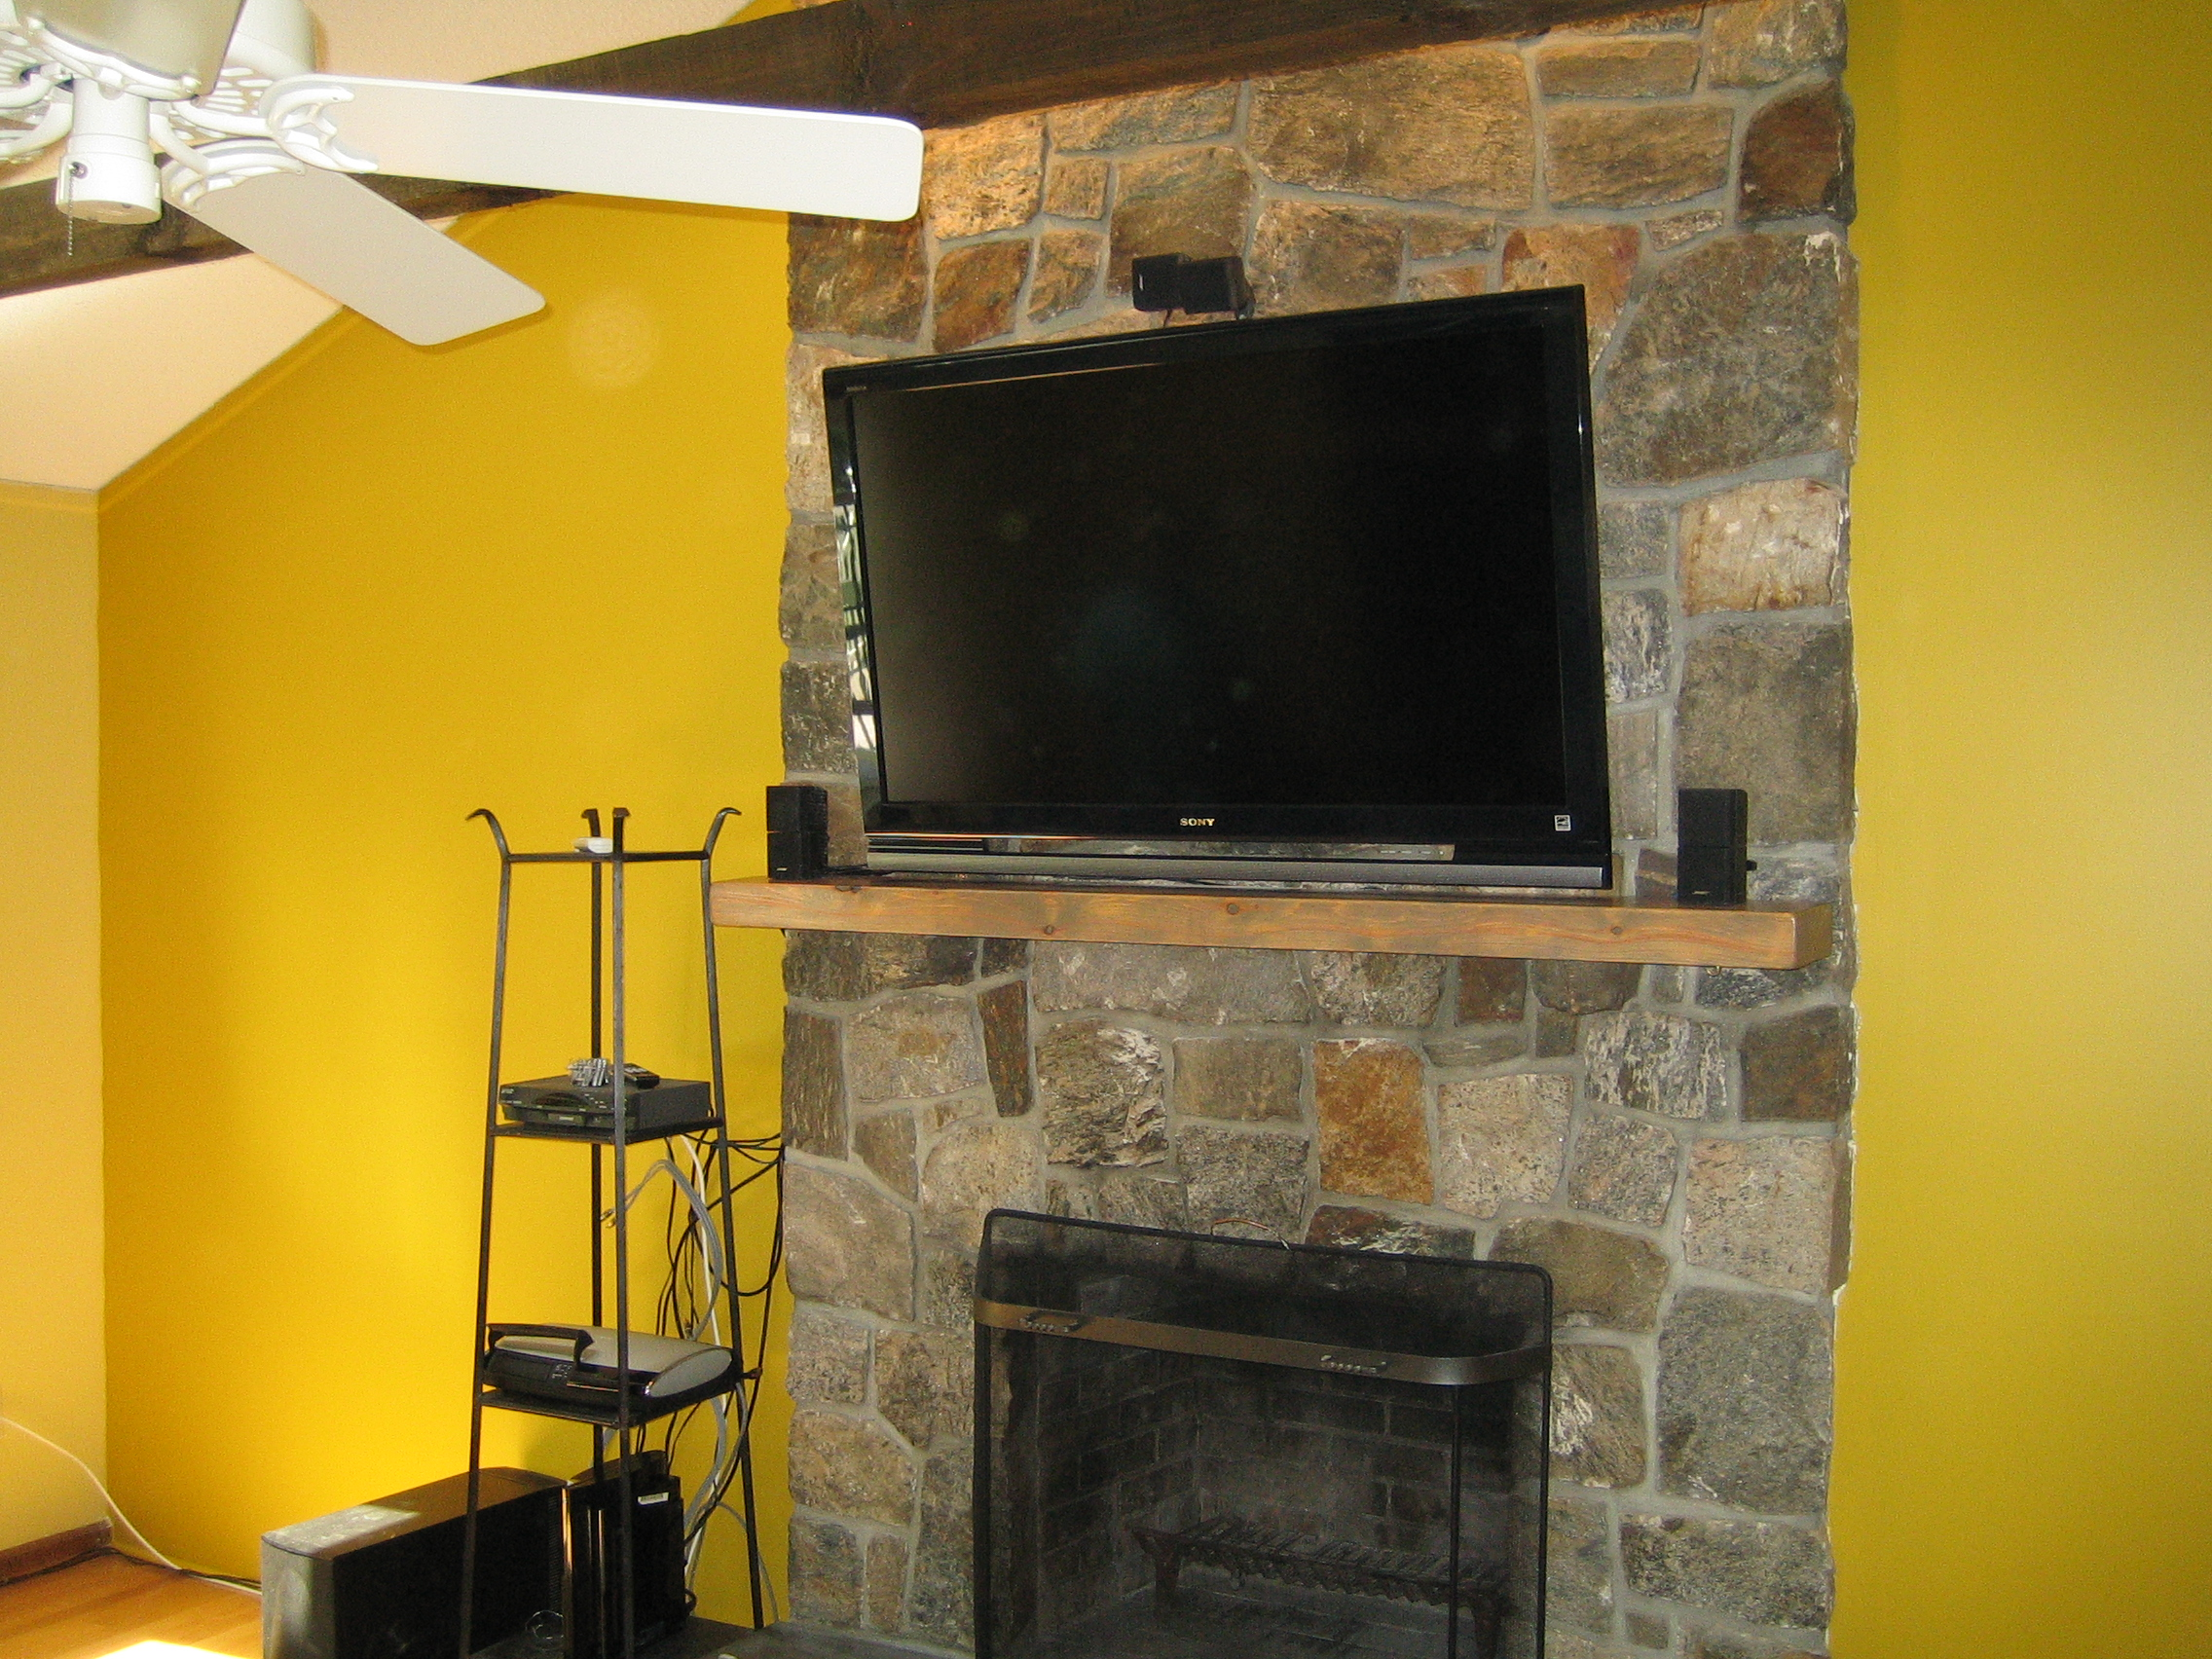 Mount Tv Over Stone Fireplace - Fireplace Ideas